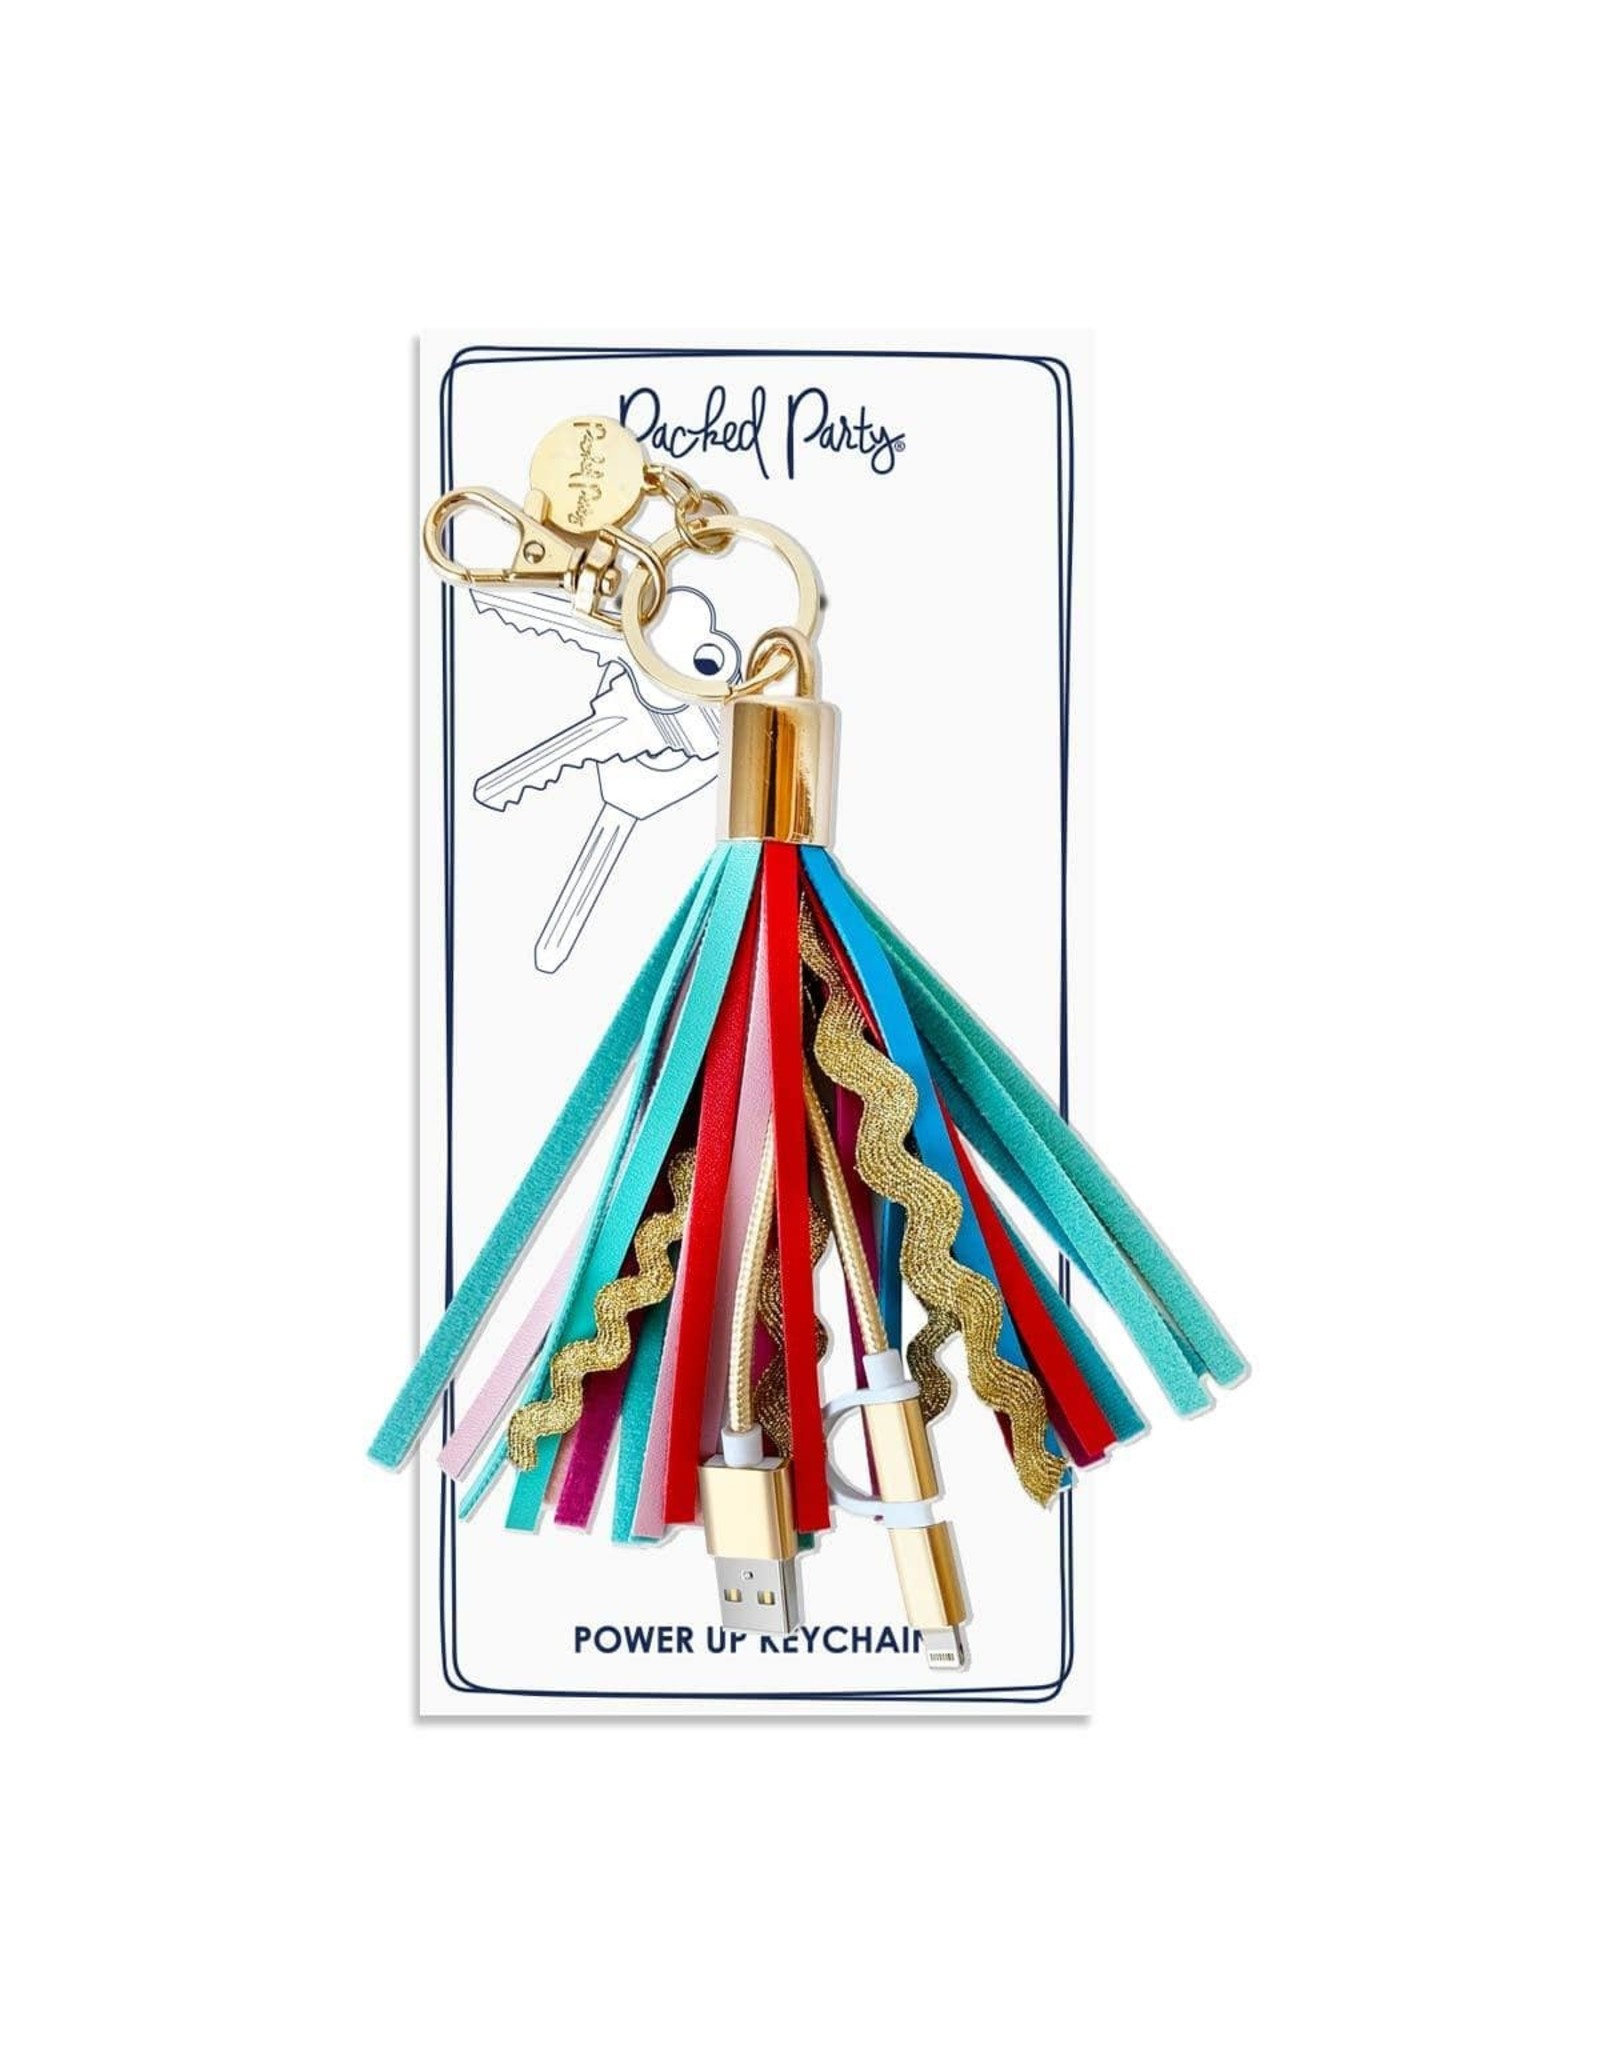 Packed Party Sweet treat tassel charging keychain